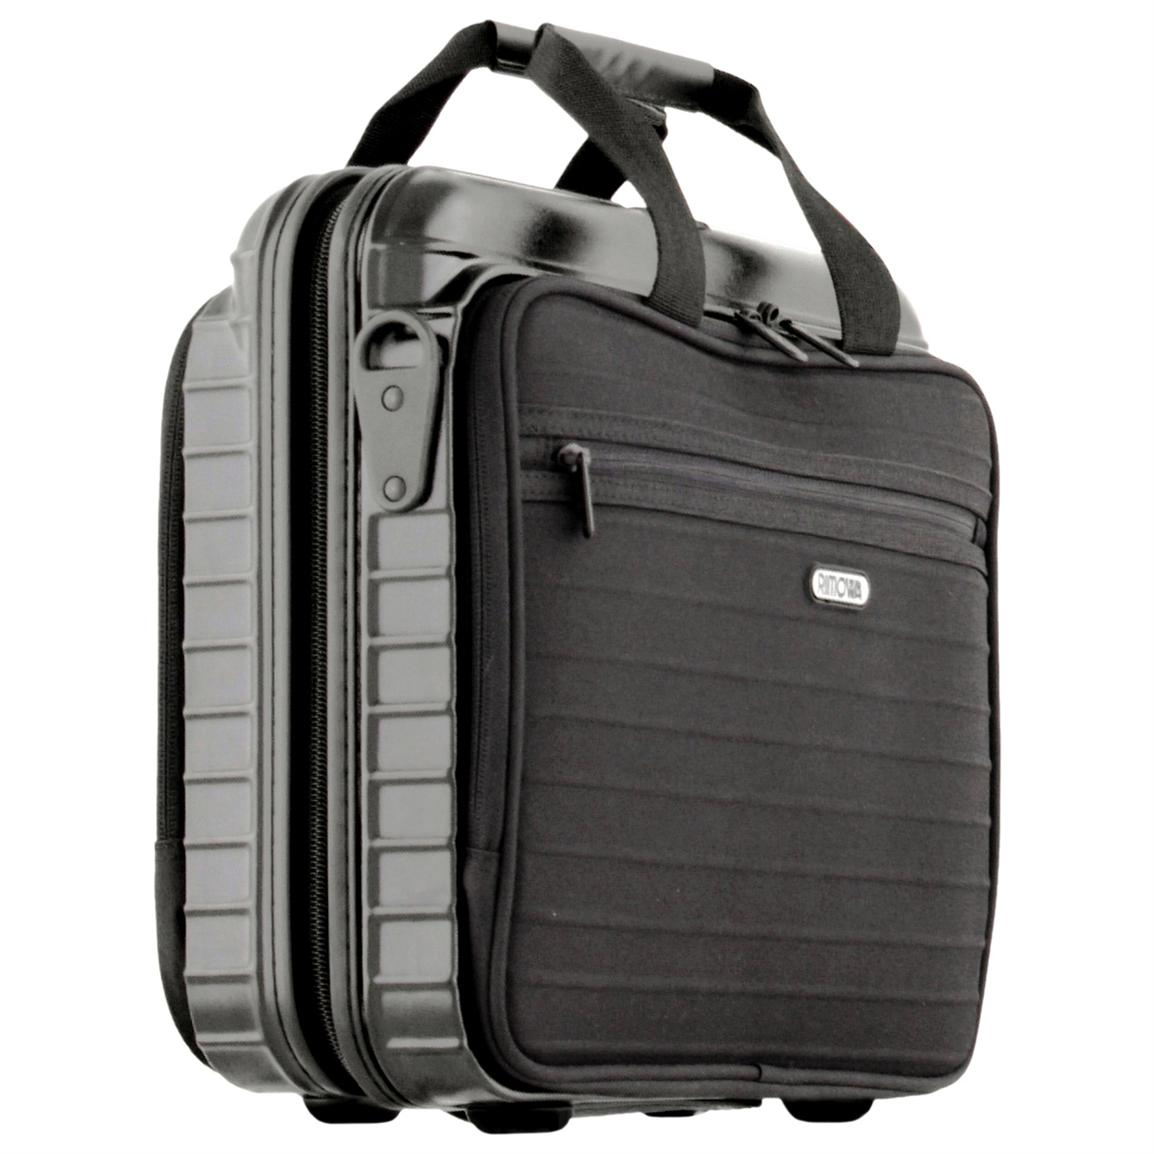 rimowa briefcase photo - 1